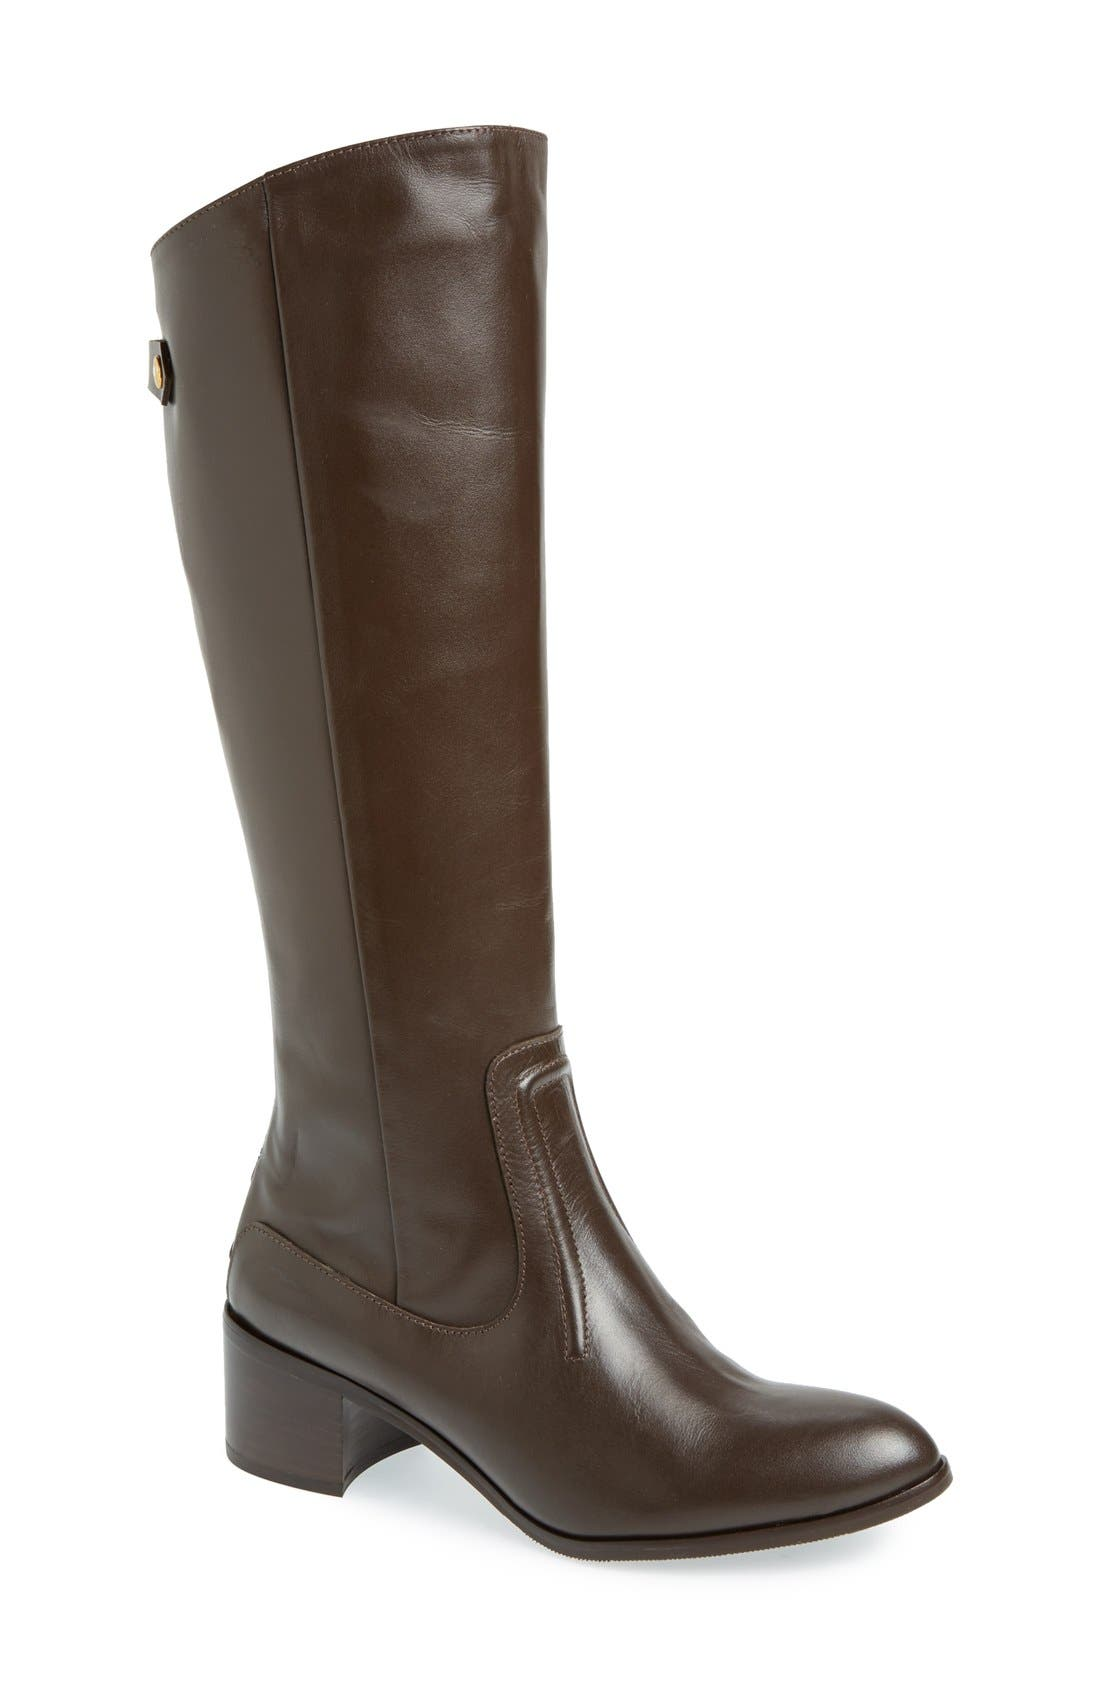 Alternate Image 1 Selected - Charles David 'Ramu' Leather Riding Boot (Women)